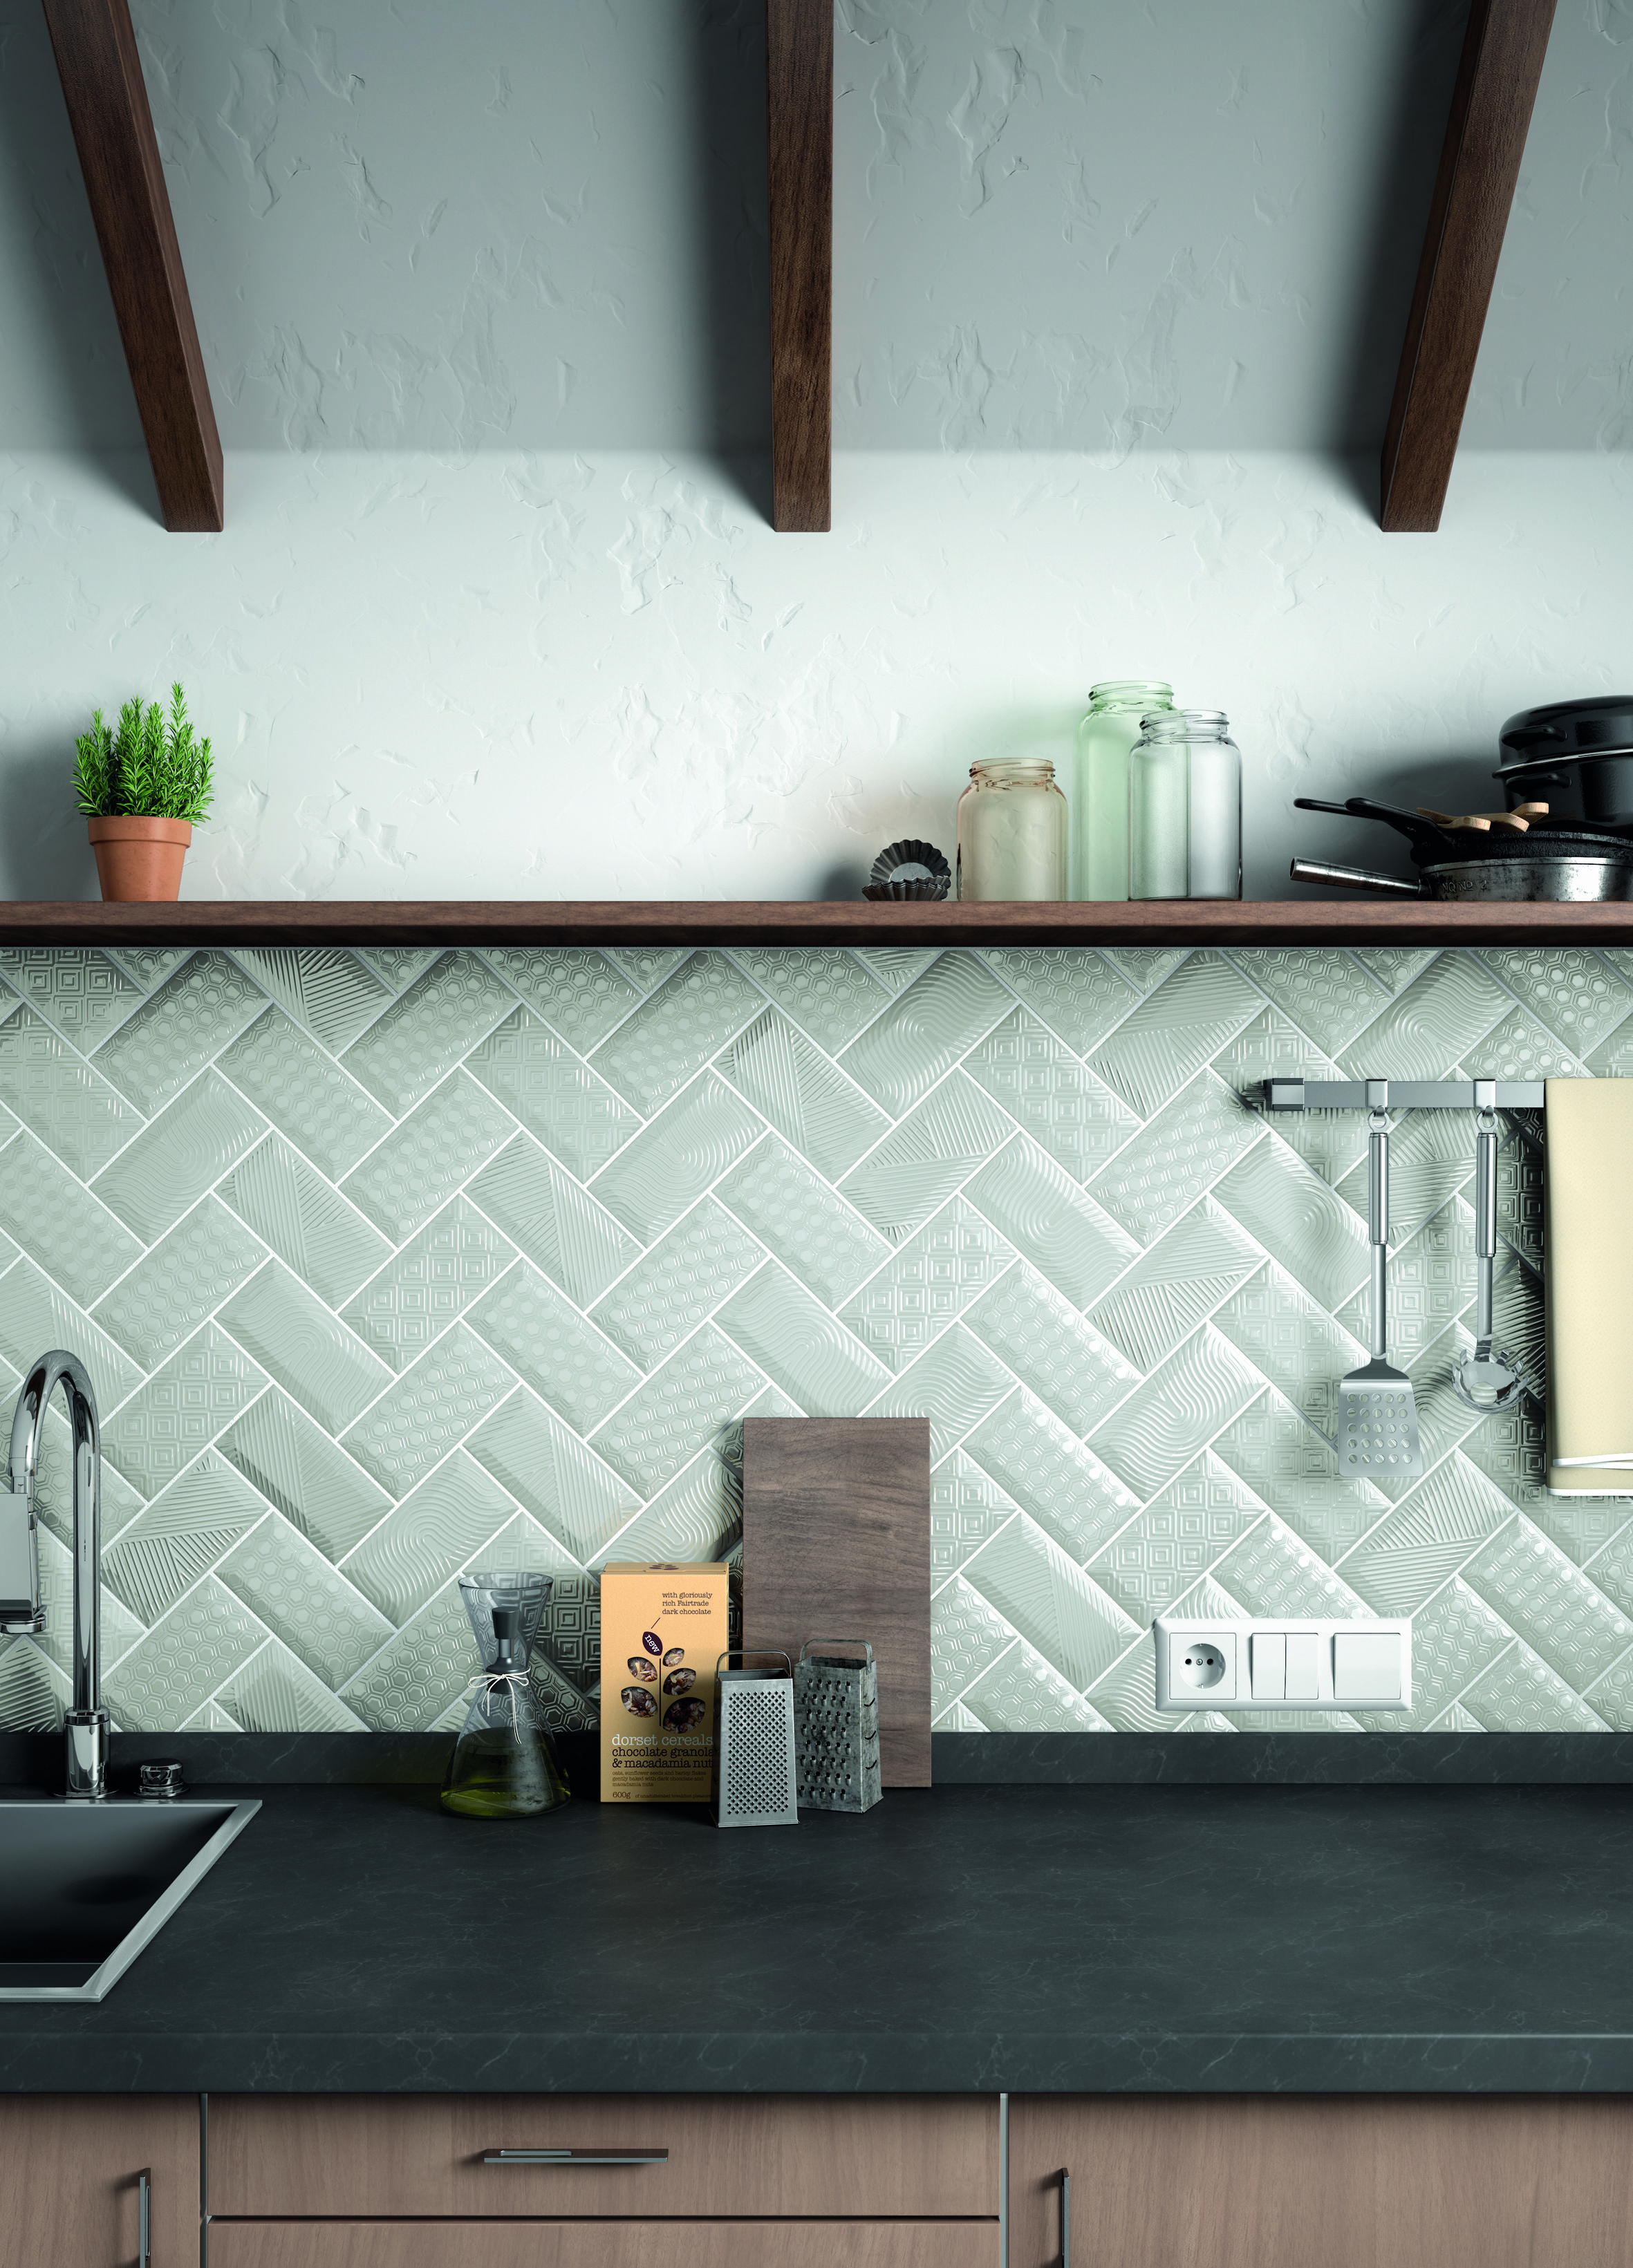 Los Palmos By Svk Interior Design In 2020 Kitchen Wall Tiles